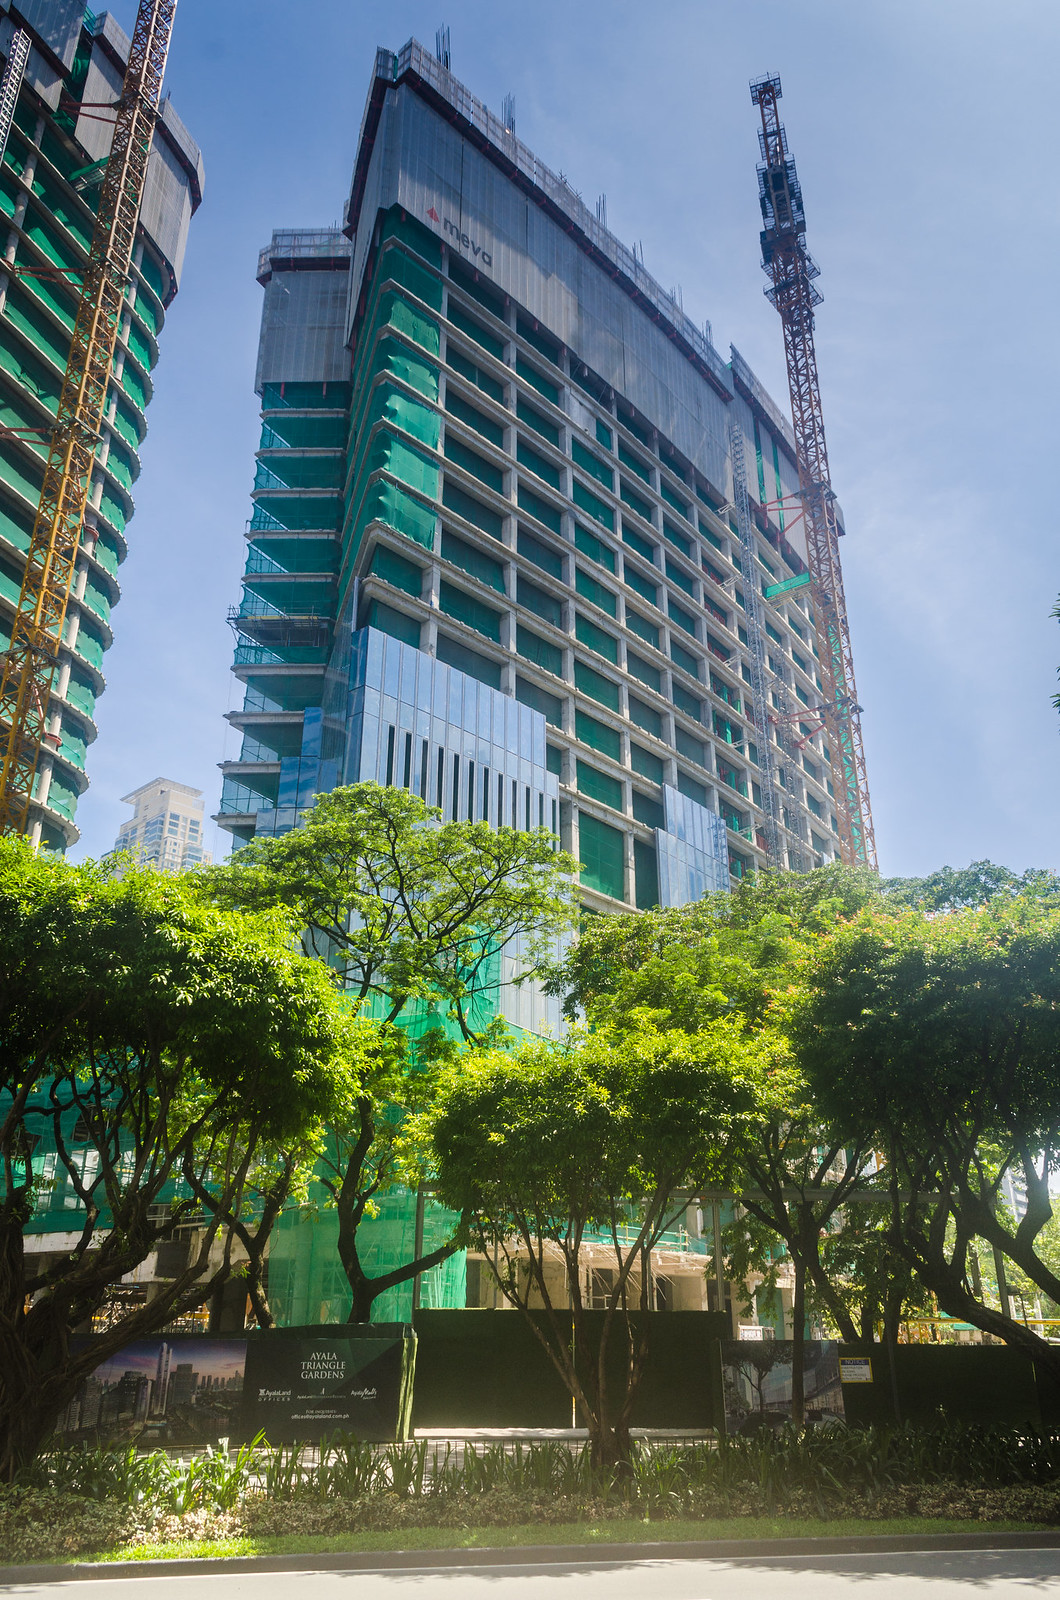 MANILA   Projects & Construction - Page 1114 - SkyscraperCity